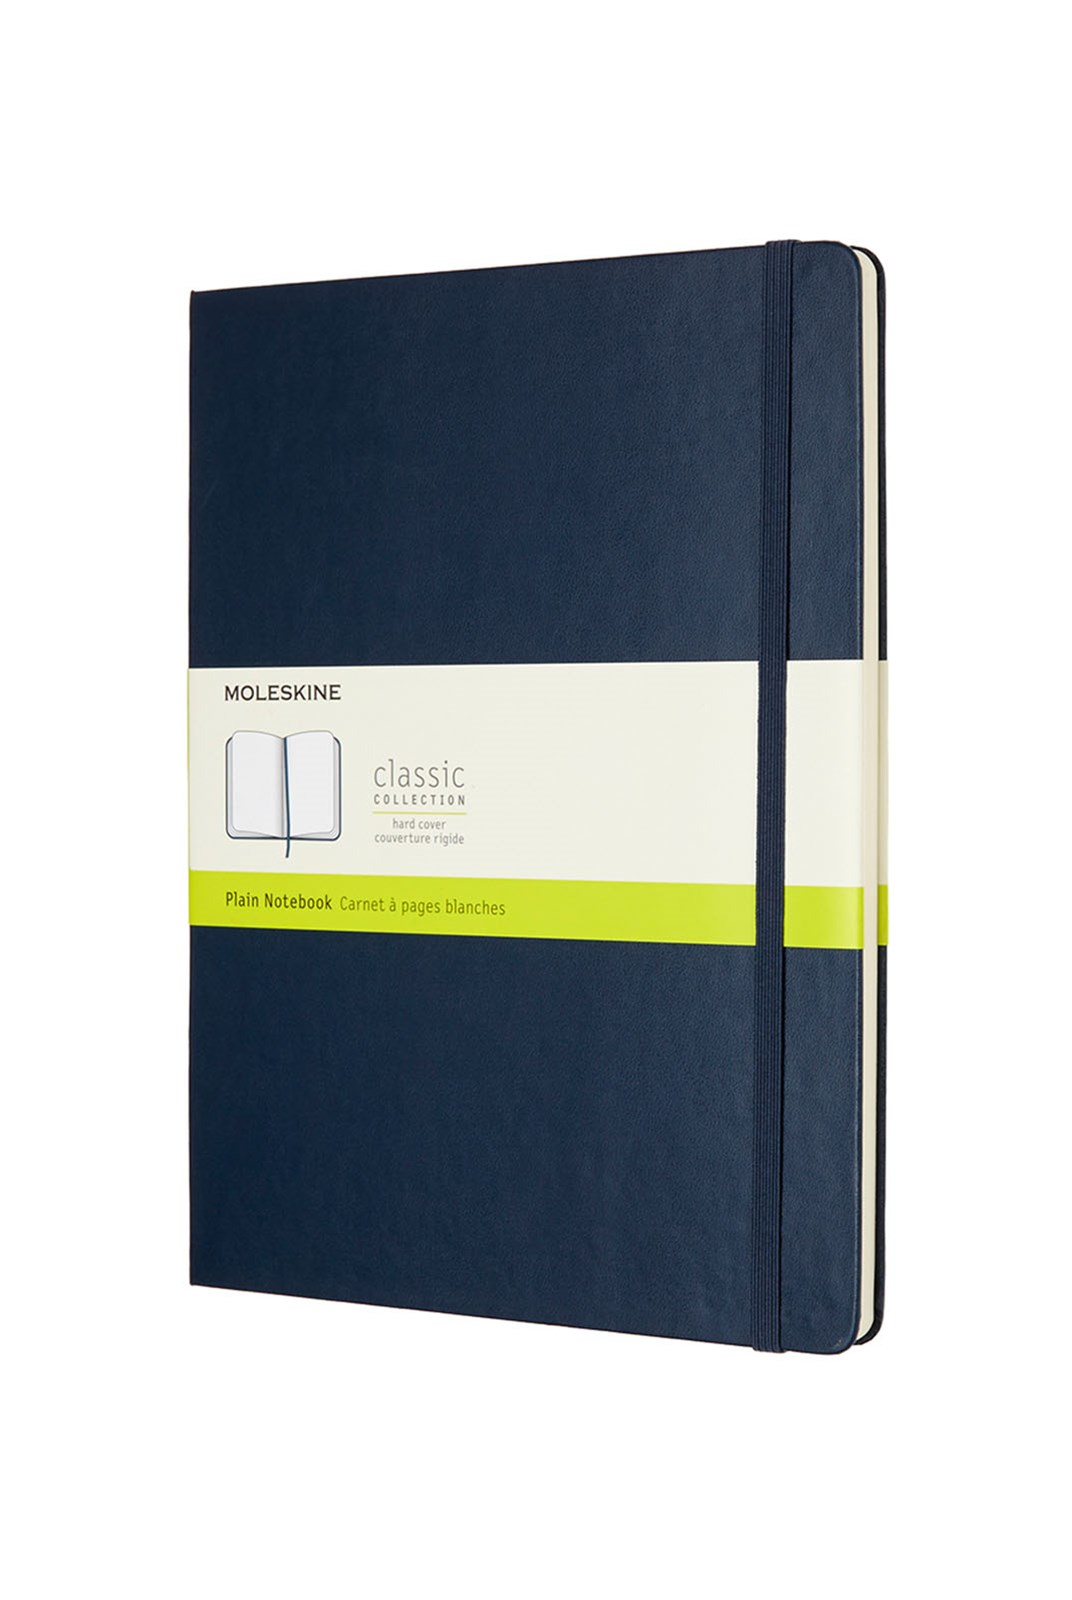 Moleskine - Classic Hard Cover Notebook - Plain - Extra Large - Sapphire Blue